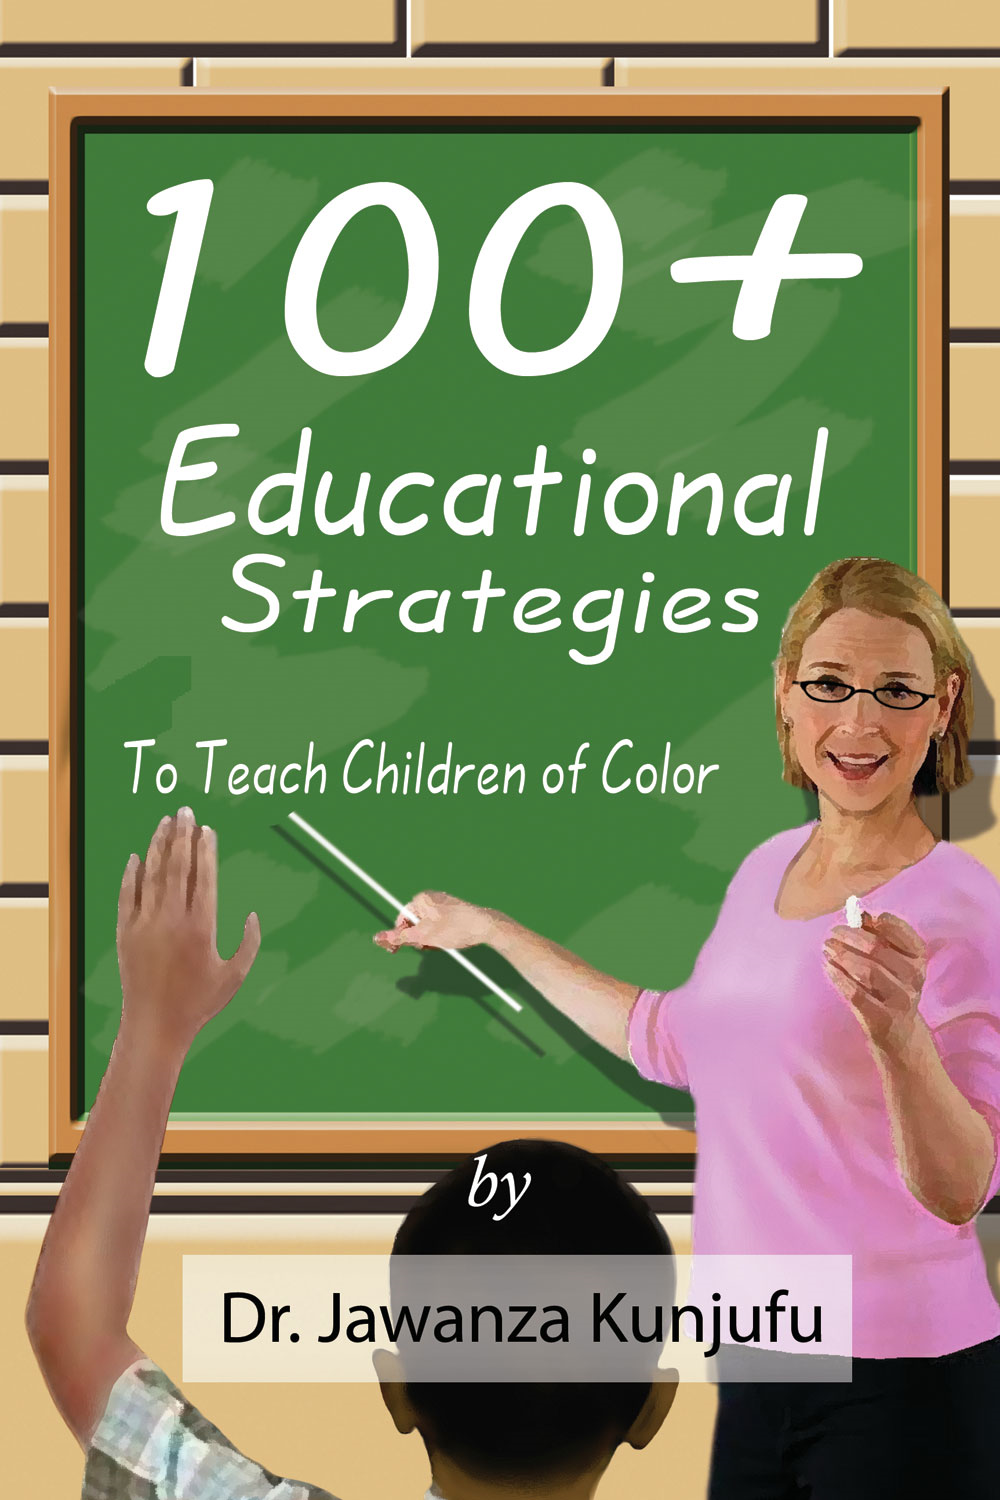 100+ Educational Strategies to Teach Children